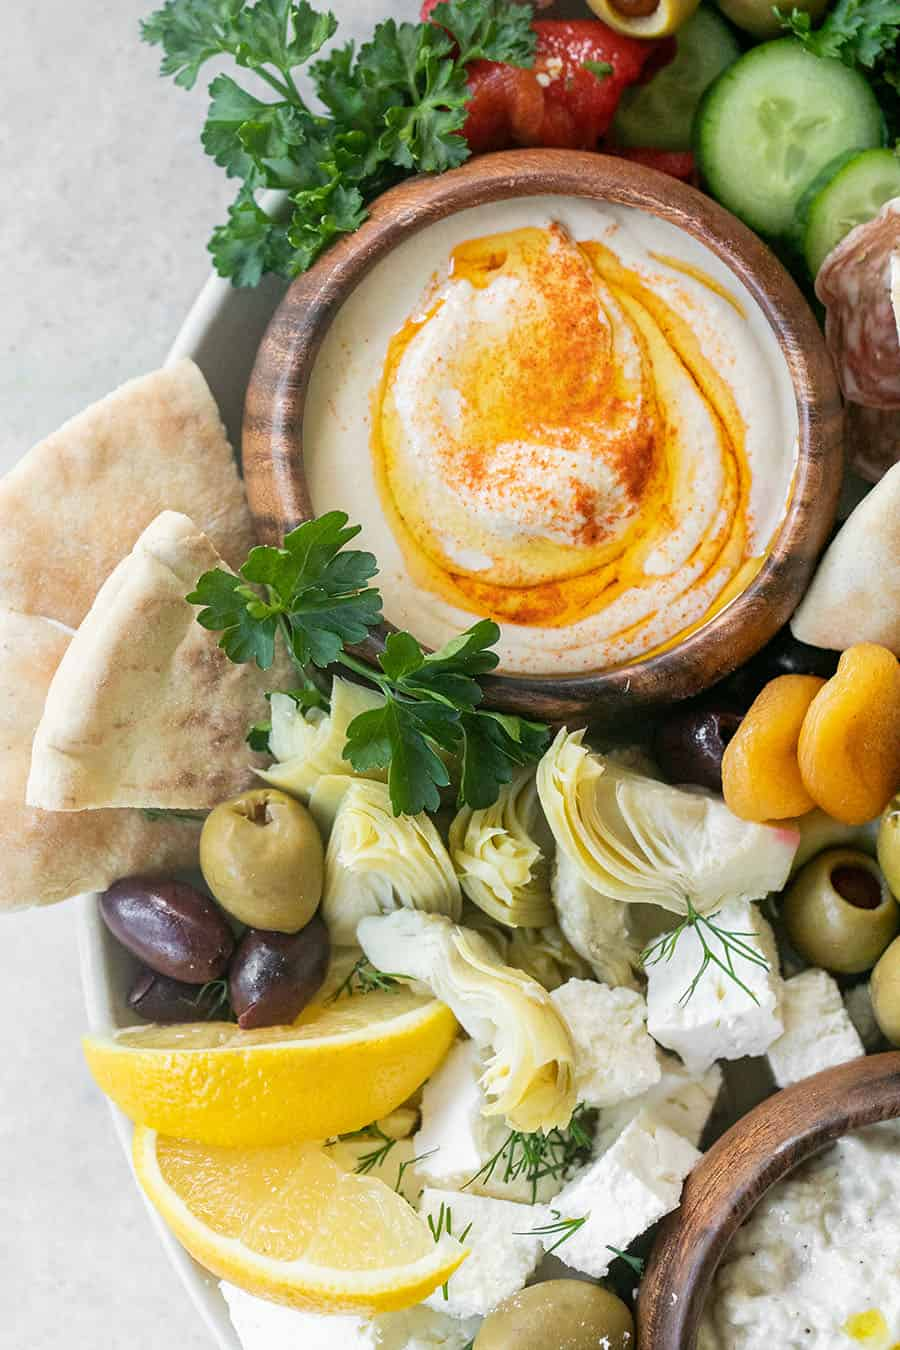 Easy Greek Food Mezze Platter with hummus, lemons, olives, and herbs.